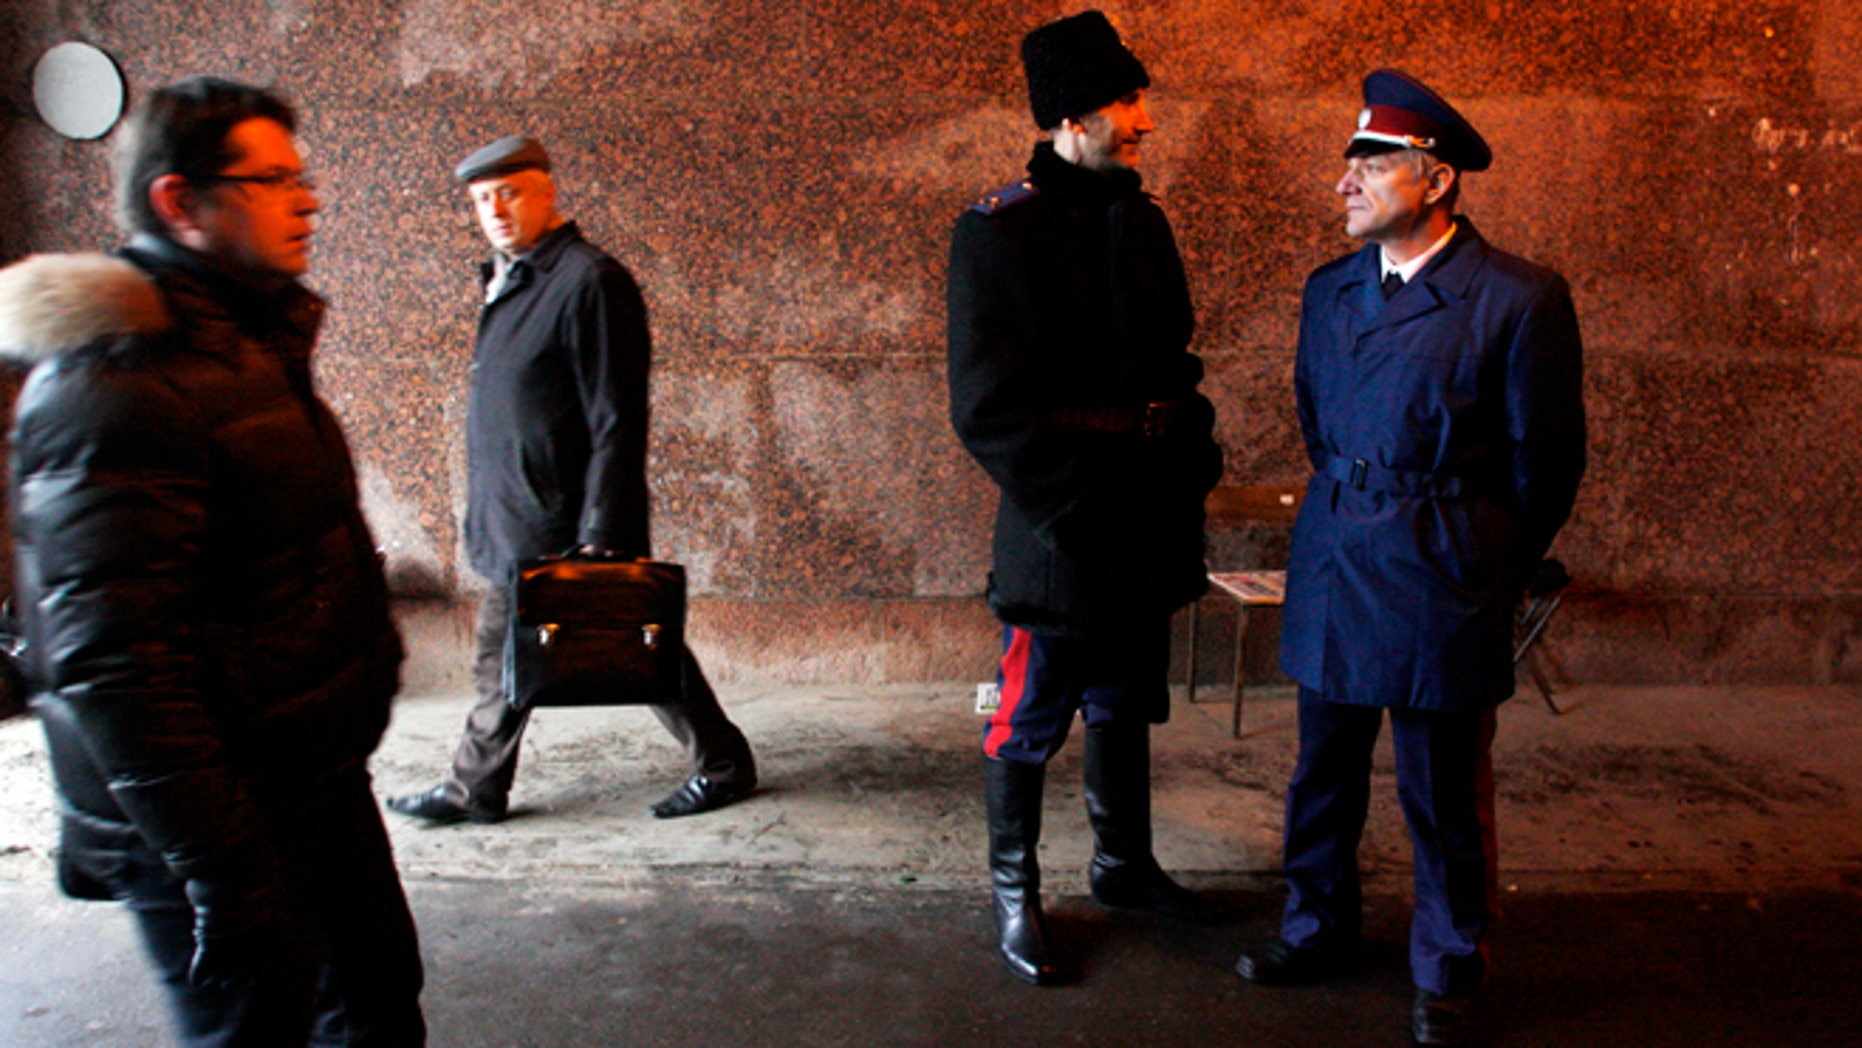 Nov. 27, 2012: Two Russian Cossacks, right, watch pedestrians passing by as they patrol Belorussky railway station in downtown Moscow, Russia.